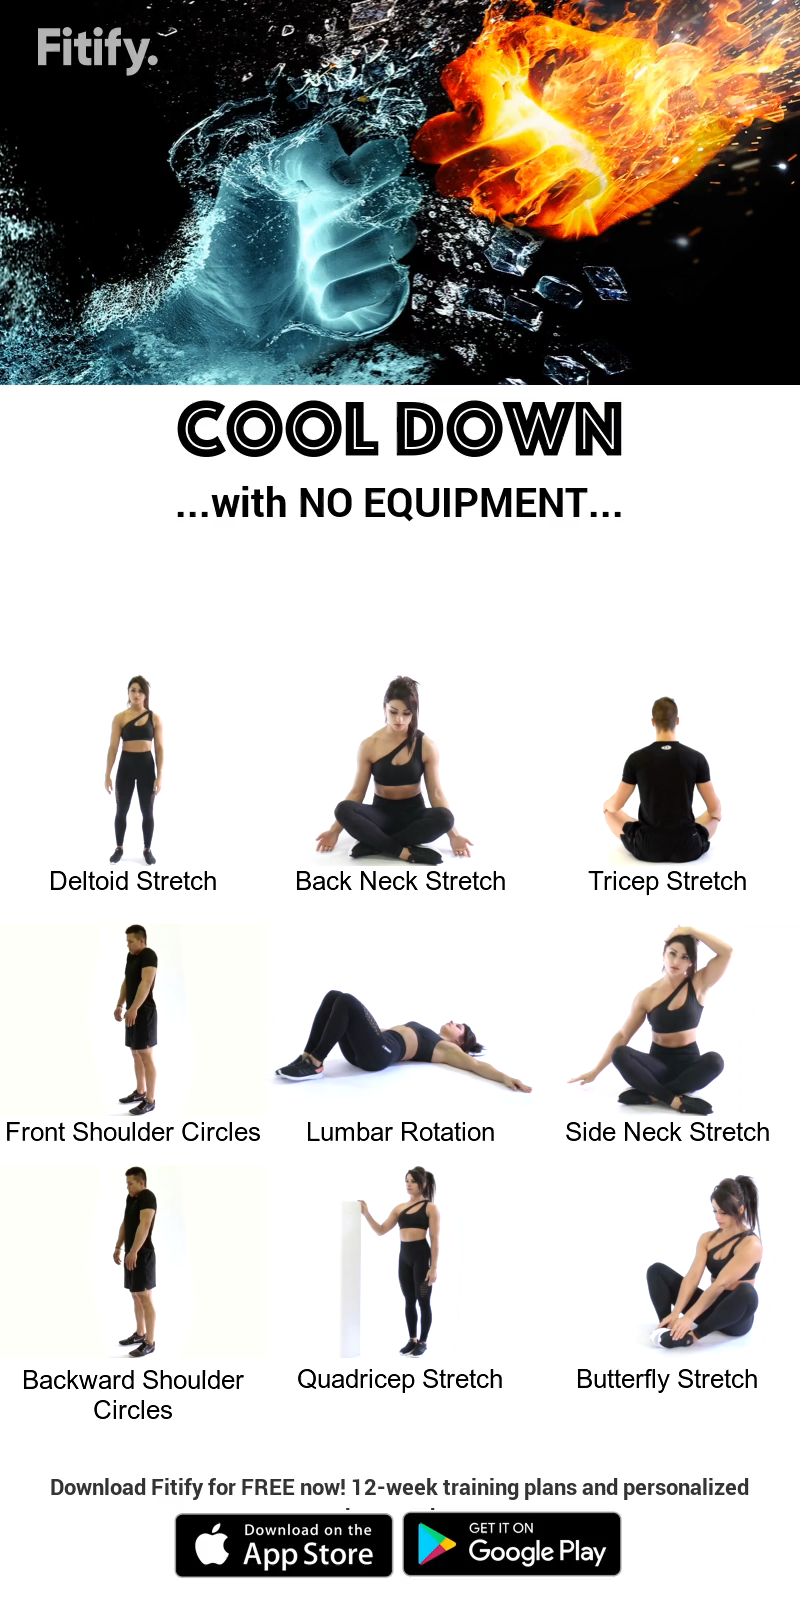 Cool Down without equipment by Fitify #fitnessexercisesathome